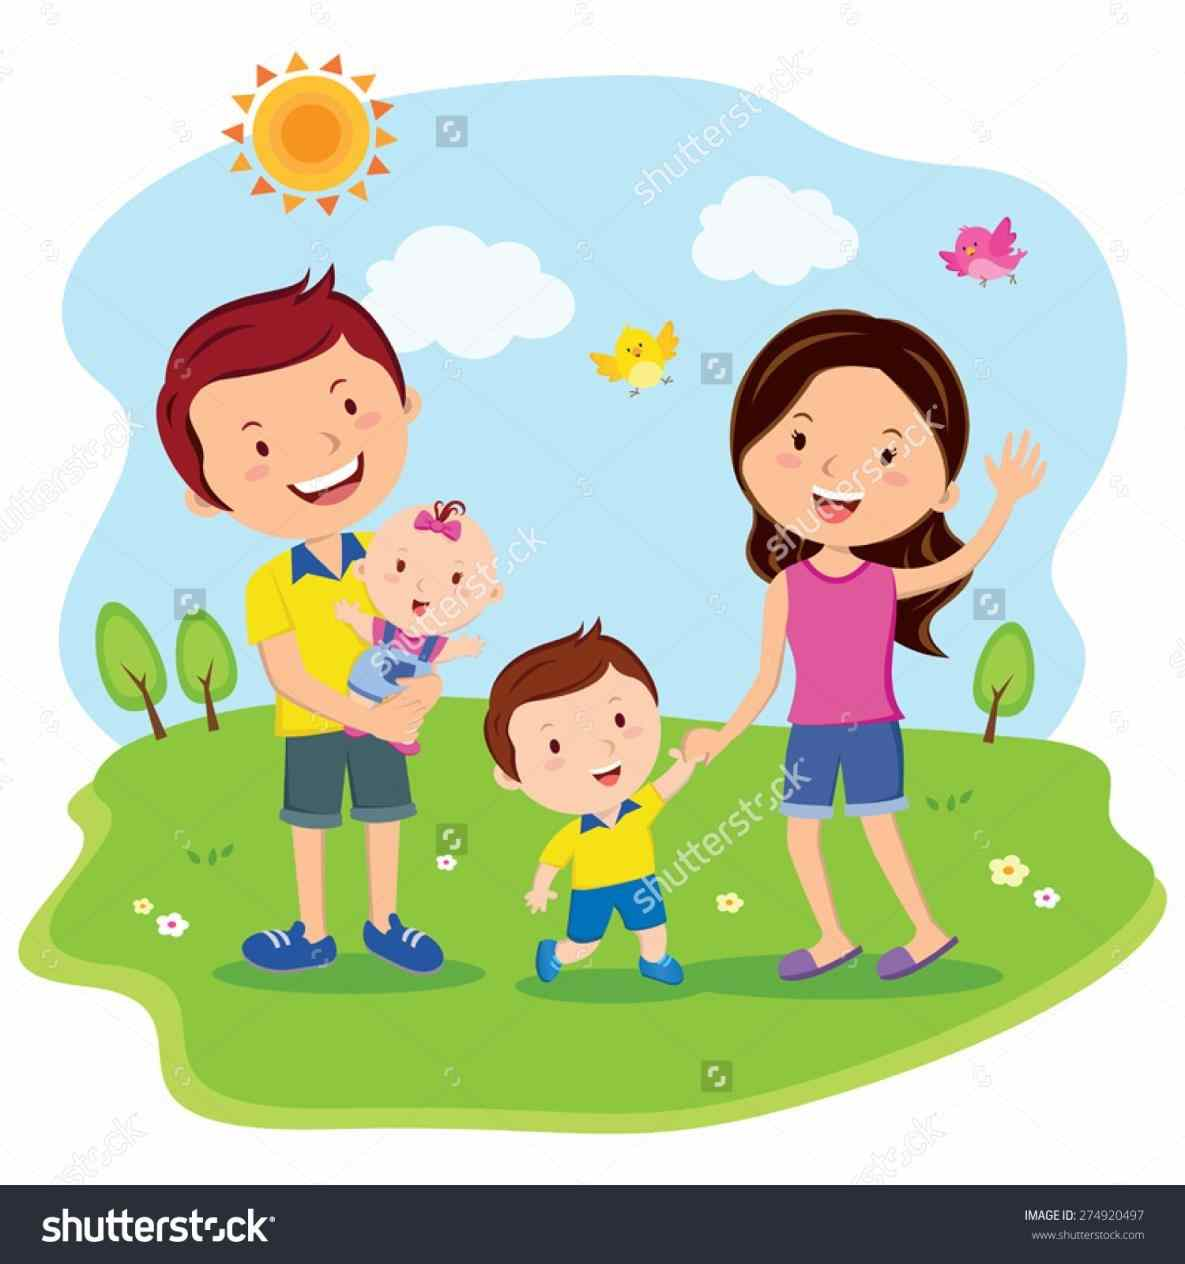 Activity cilpart charming home. Activities clipart